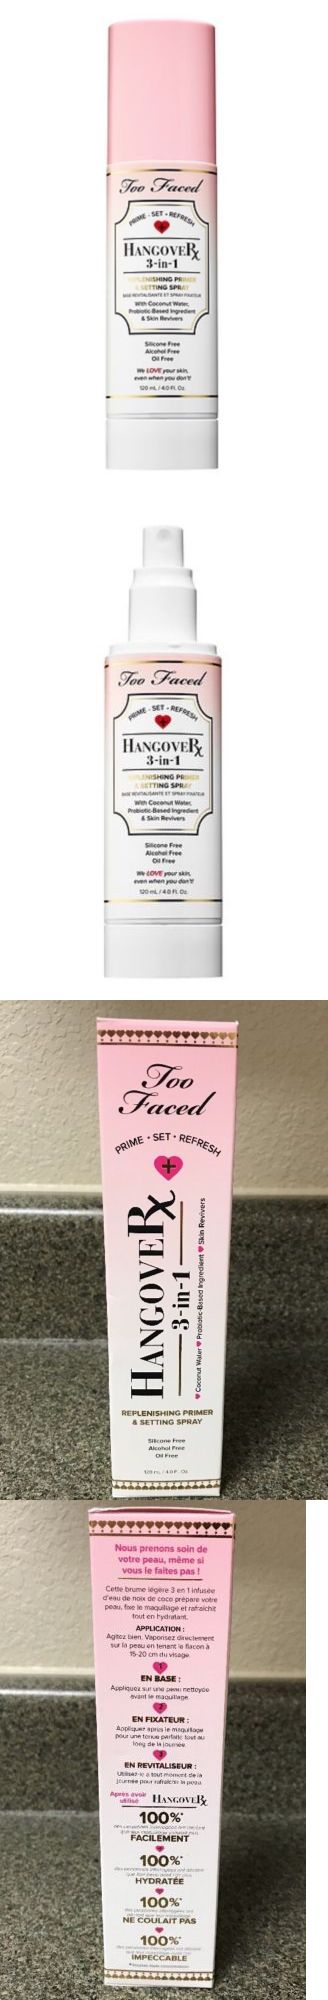 Foundation Primer: Too Faced Hangover 3 In 1 Replenish, Primer And Setting Spray Full Size~Authe~ -> BUY IT NOW ONLY: $33 on eBay!